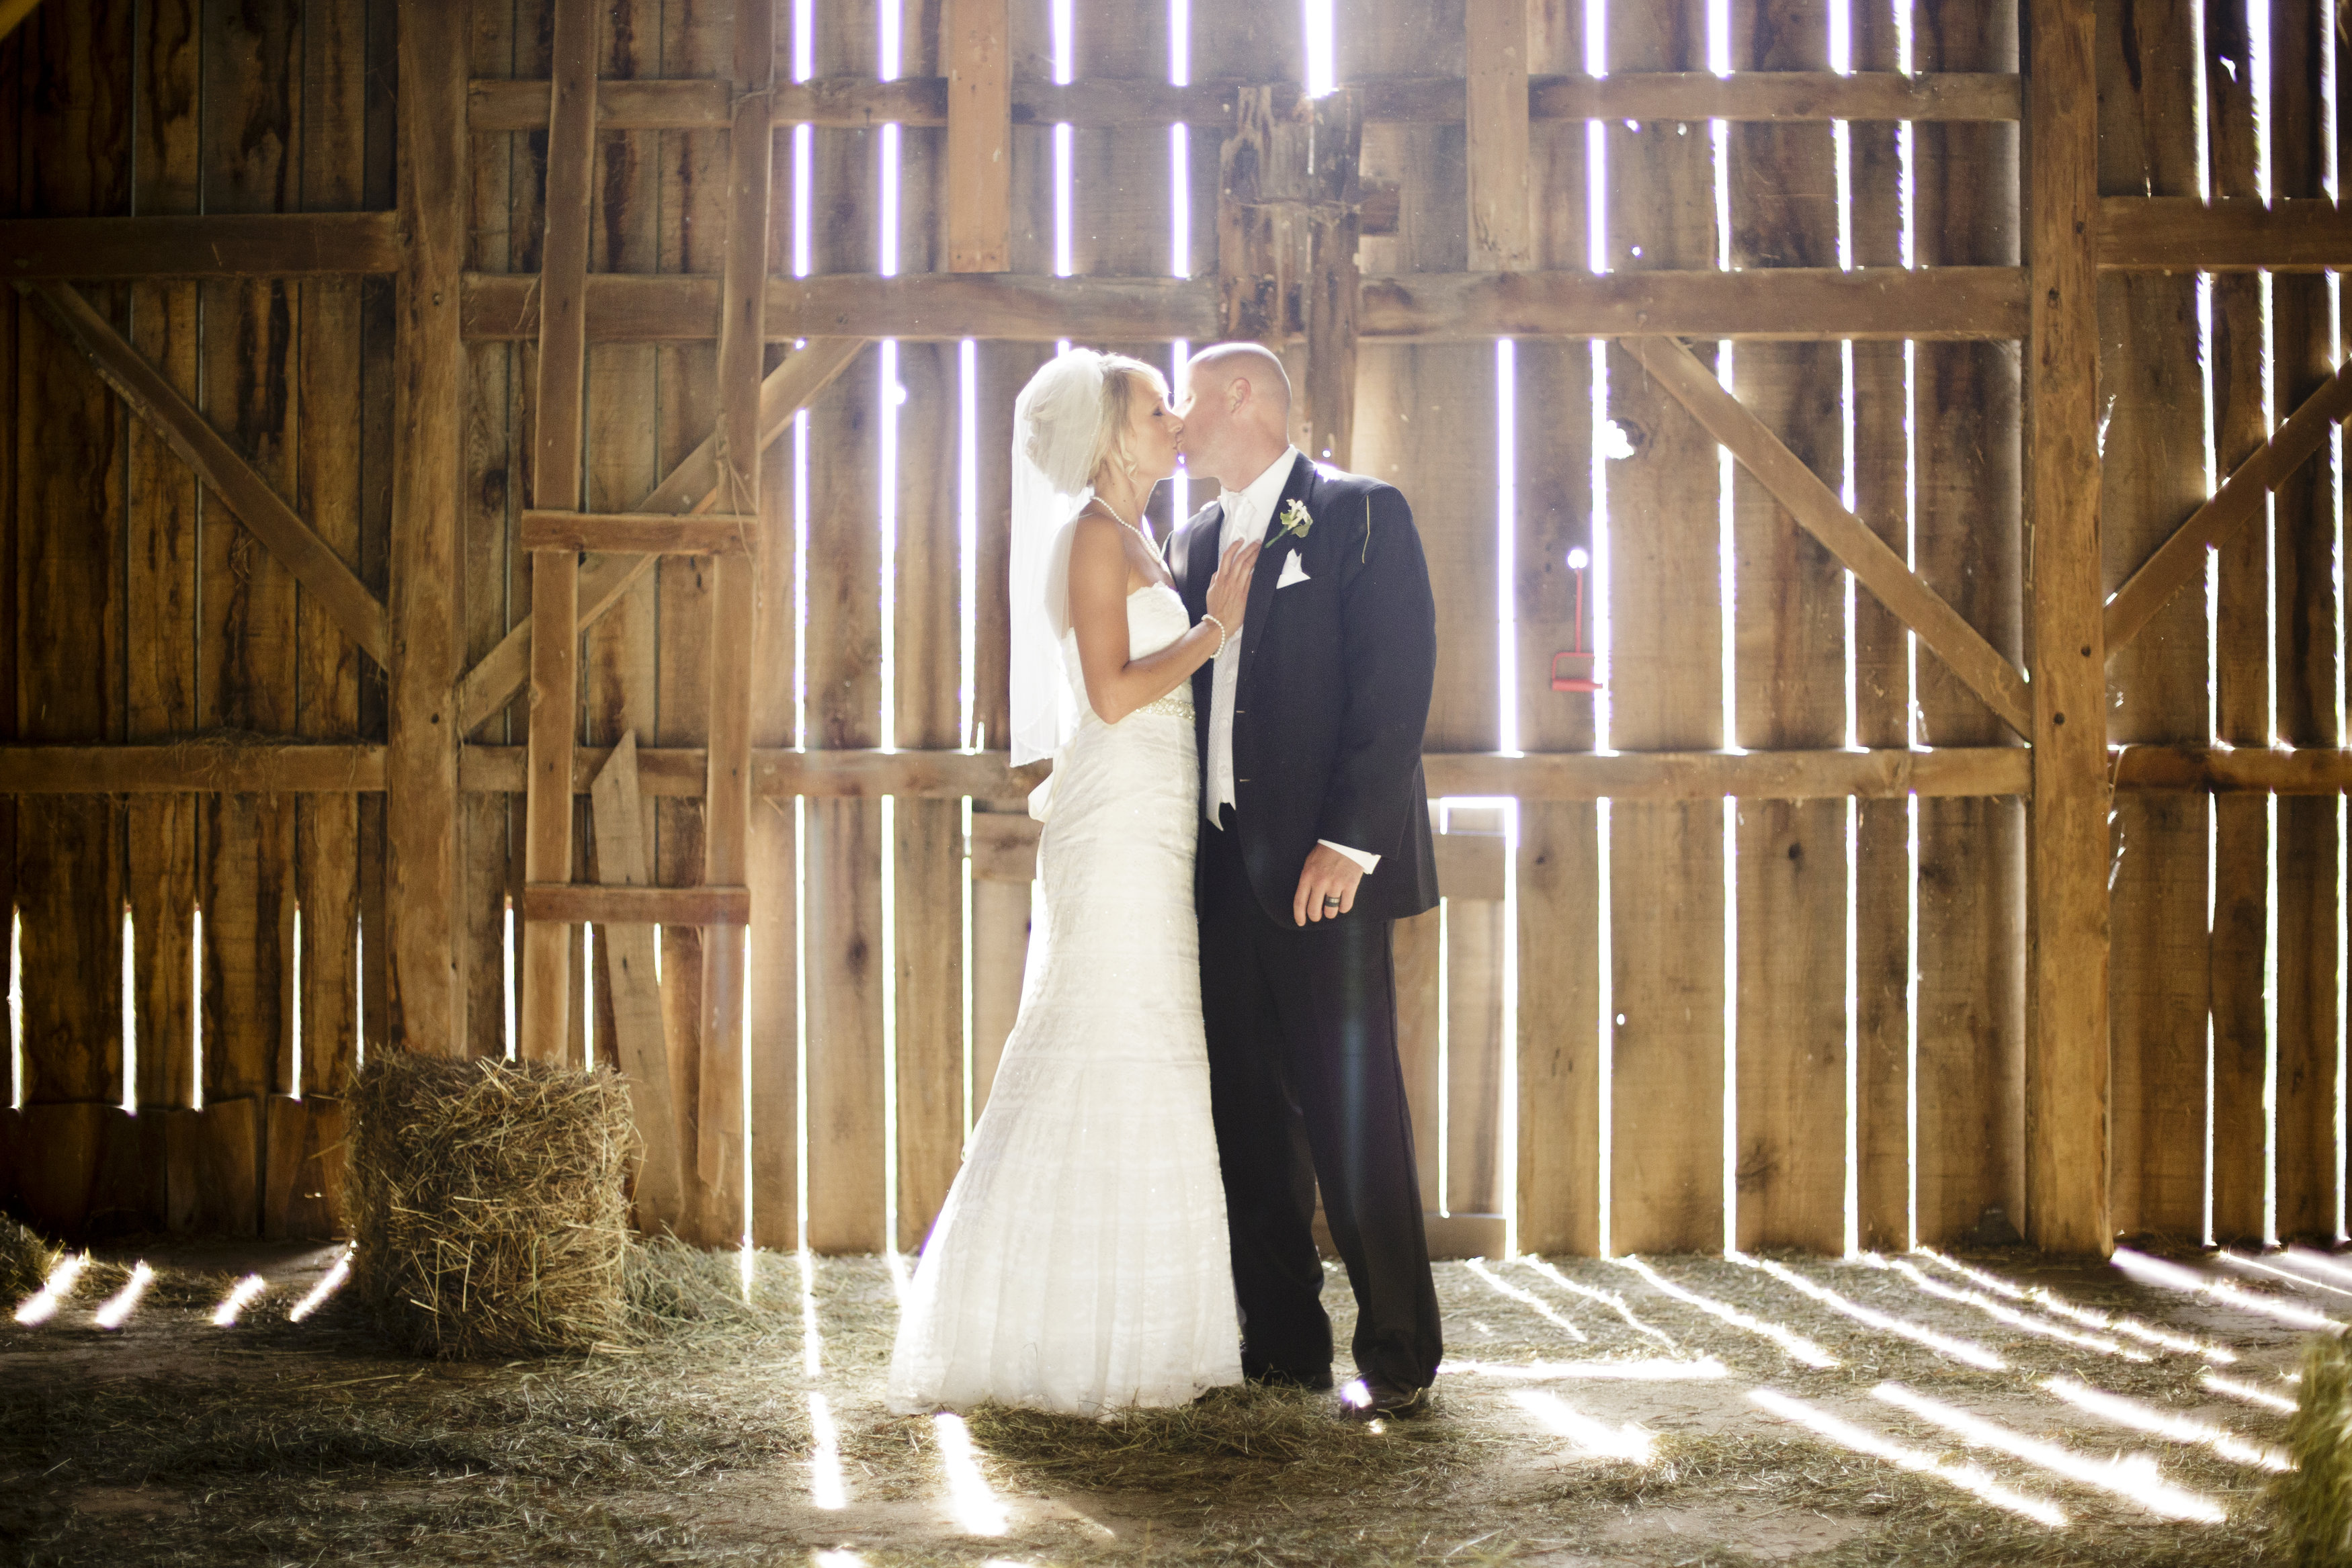 KPP: NKY Wedding Photographers